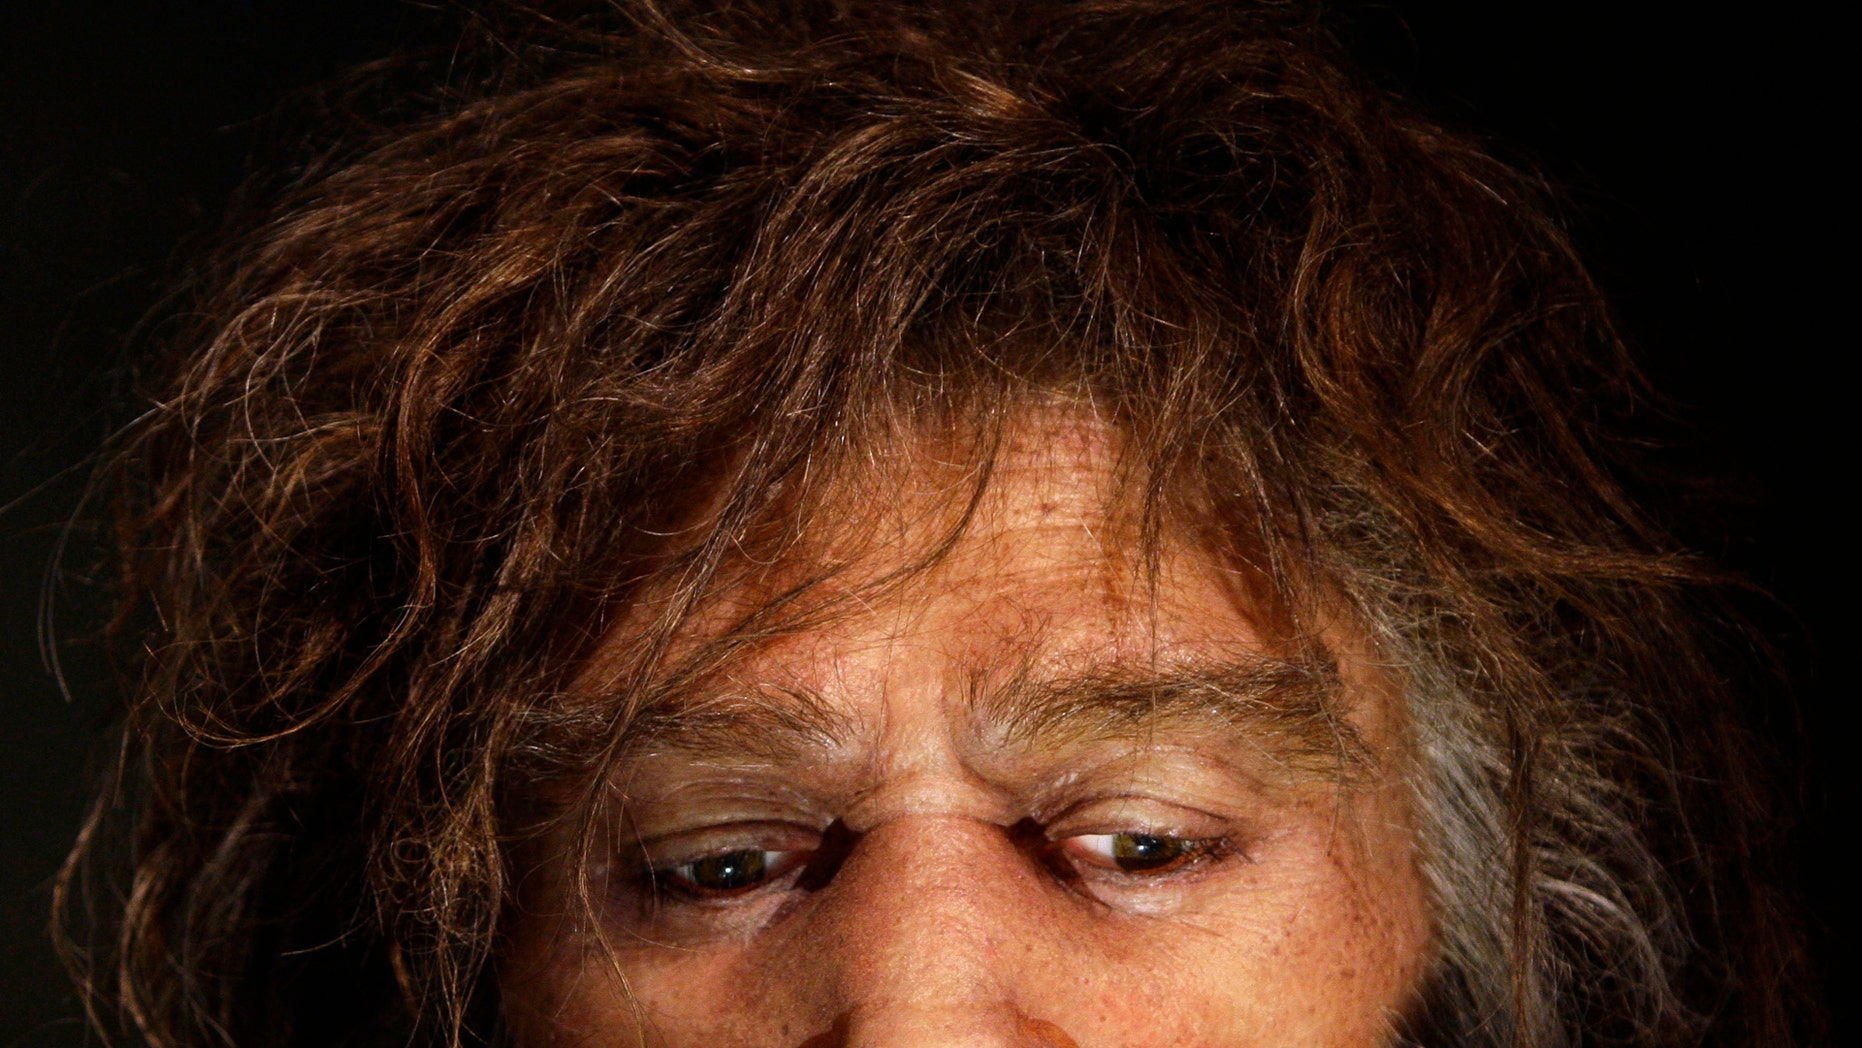 File photo: Hyperrealistic face of a neanderthal male is displayed in a cave in the new Neanderthal Museum in the northern Croatian town of Krapina February 25, 2010. (REUTERS/Nikola Solic)